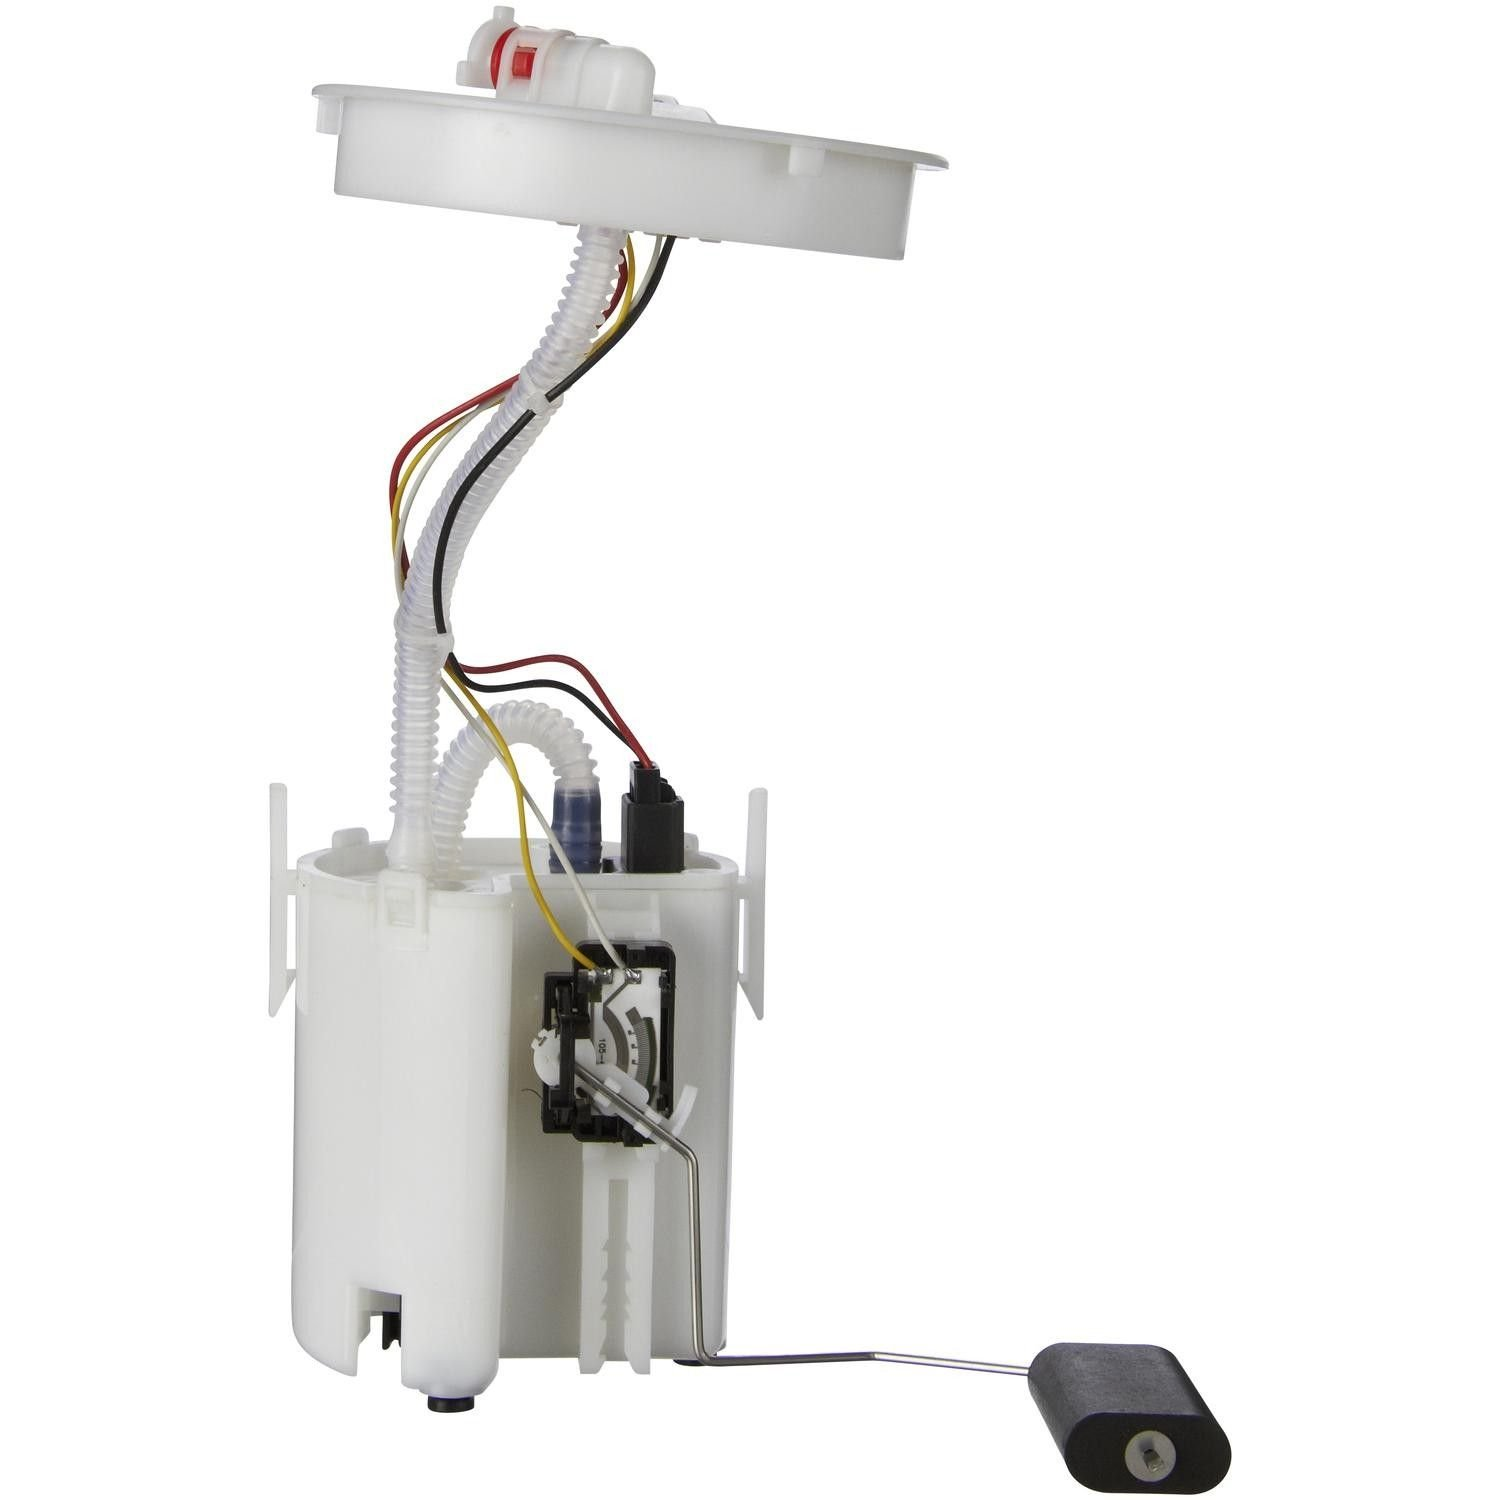 Spectra Premium Sp113: Fuel Pump Module Assembly Replacement (ACDelco, APA/URO